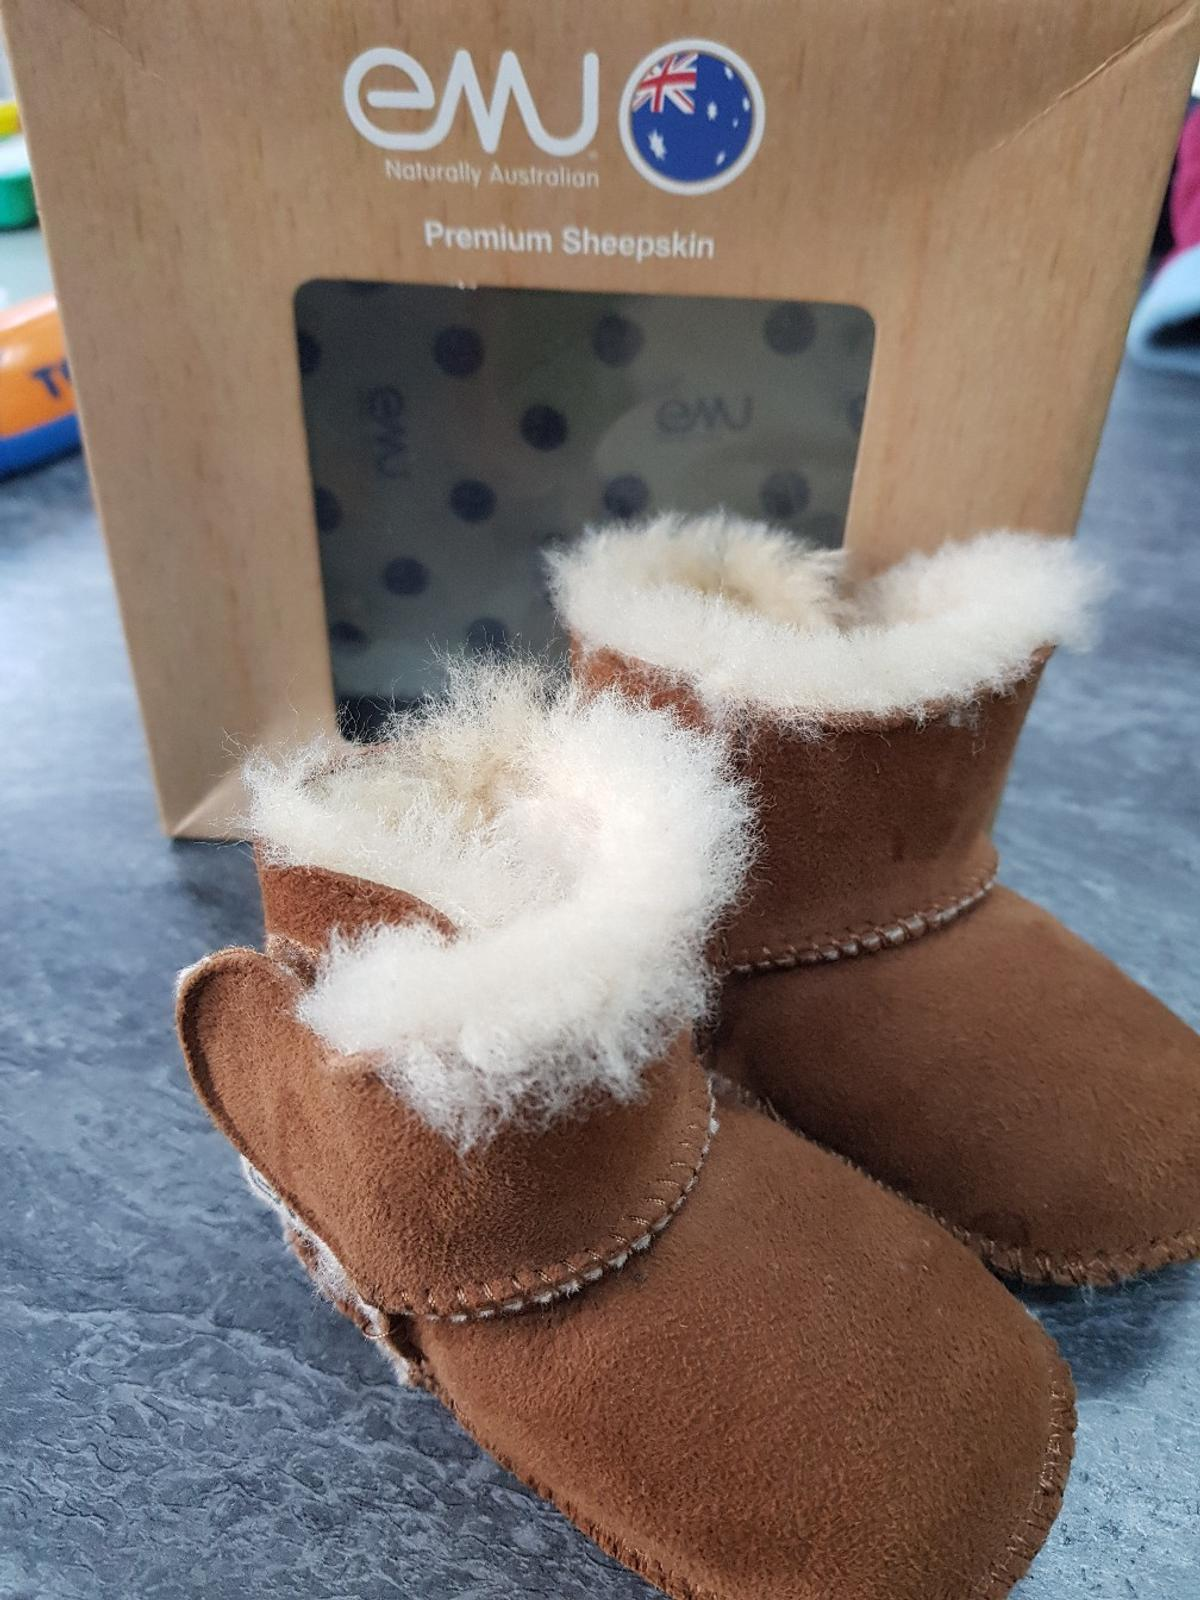 04d7b0acce6 EMU BABY Booties 0-6 months UGG style